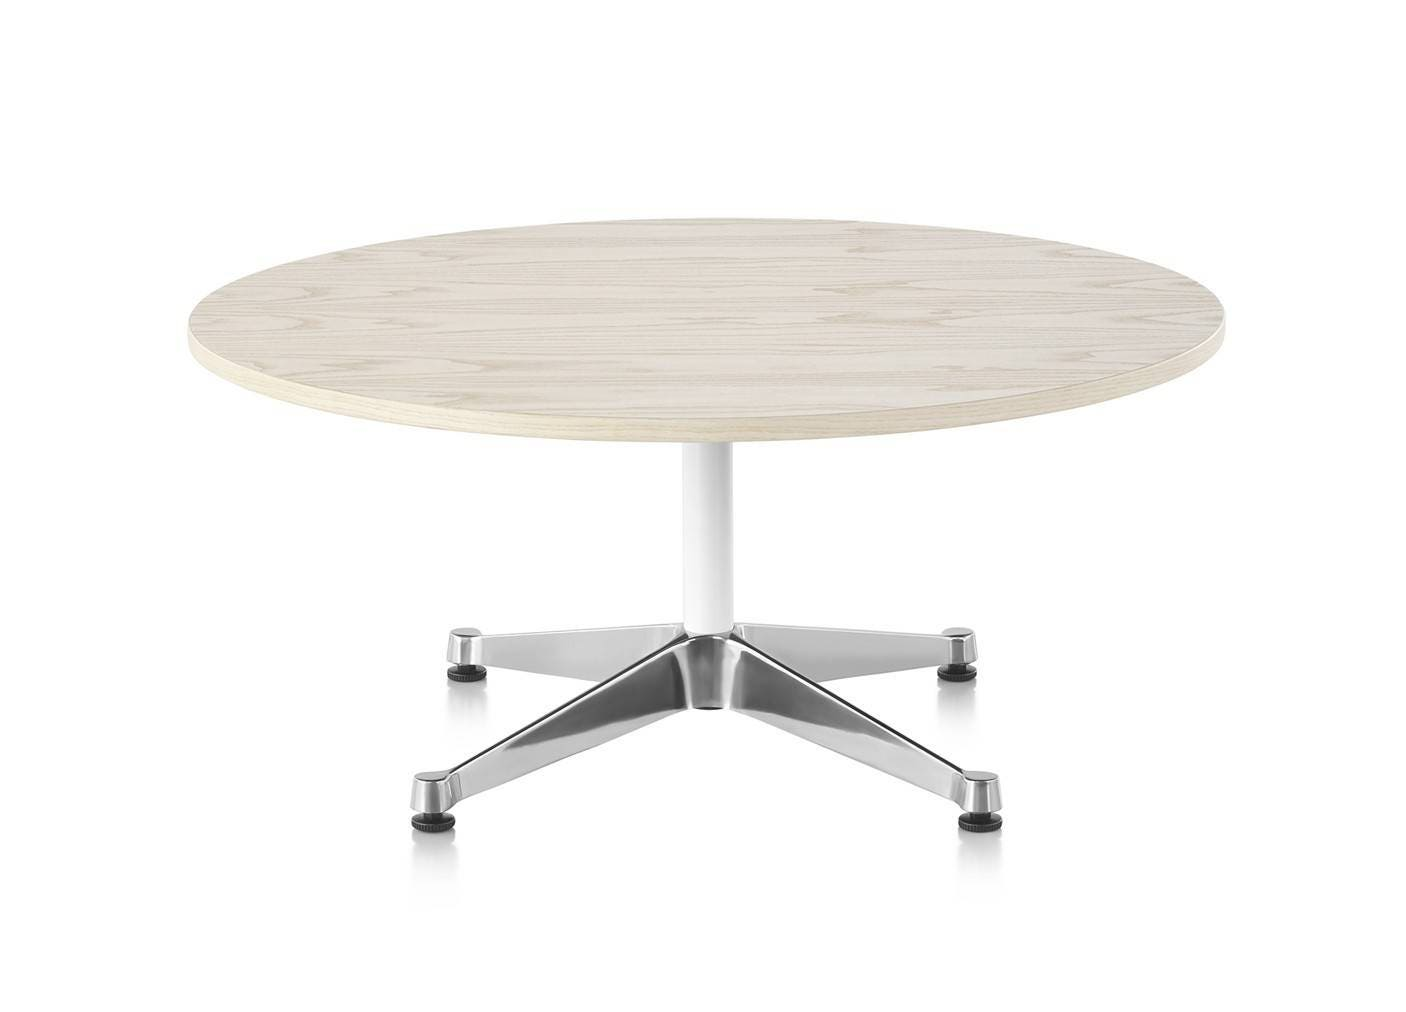 Herman miller eames occasional table round gr shop canada - Eames occasional table ...